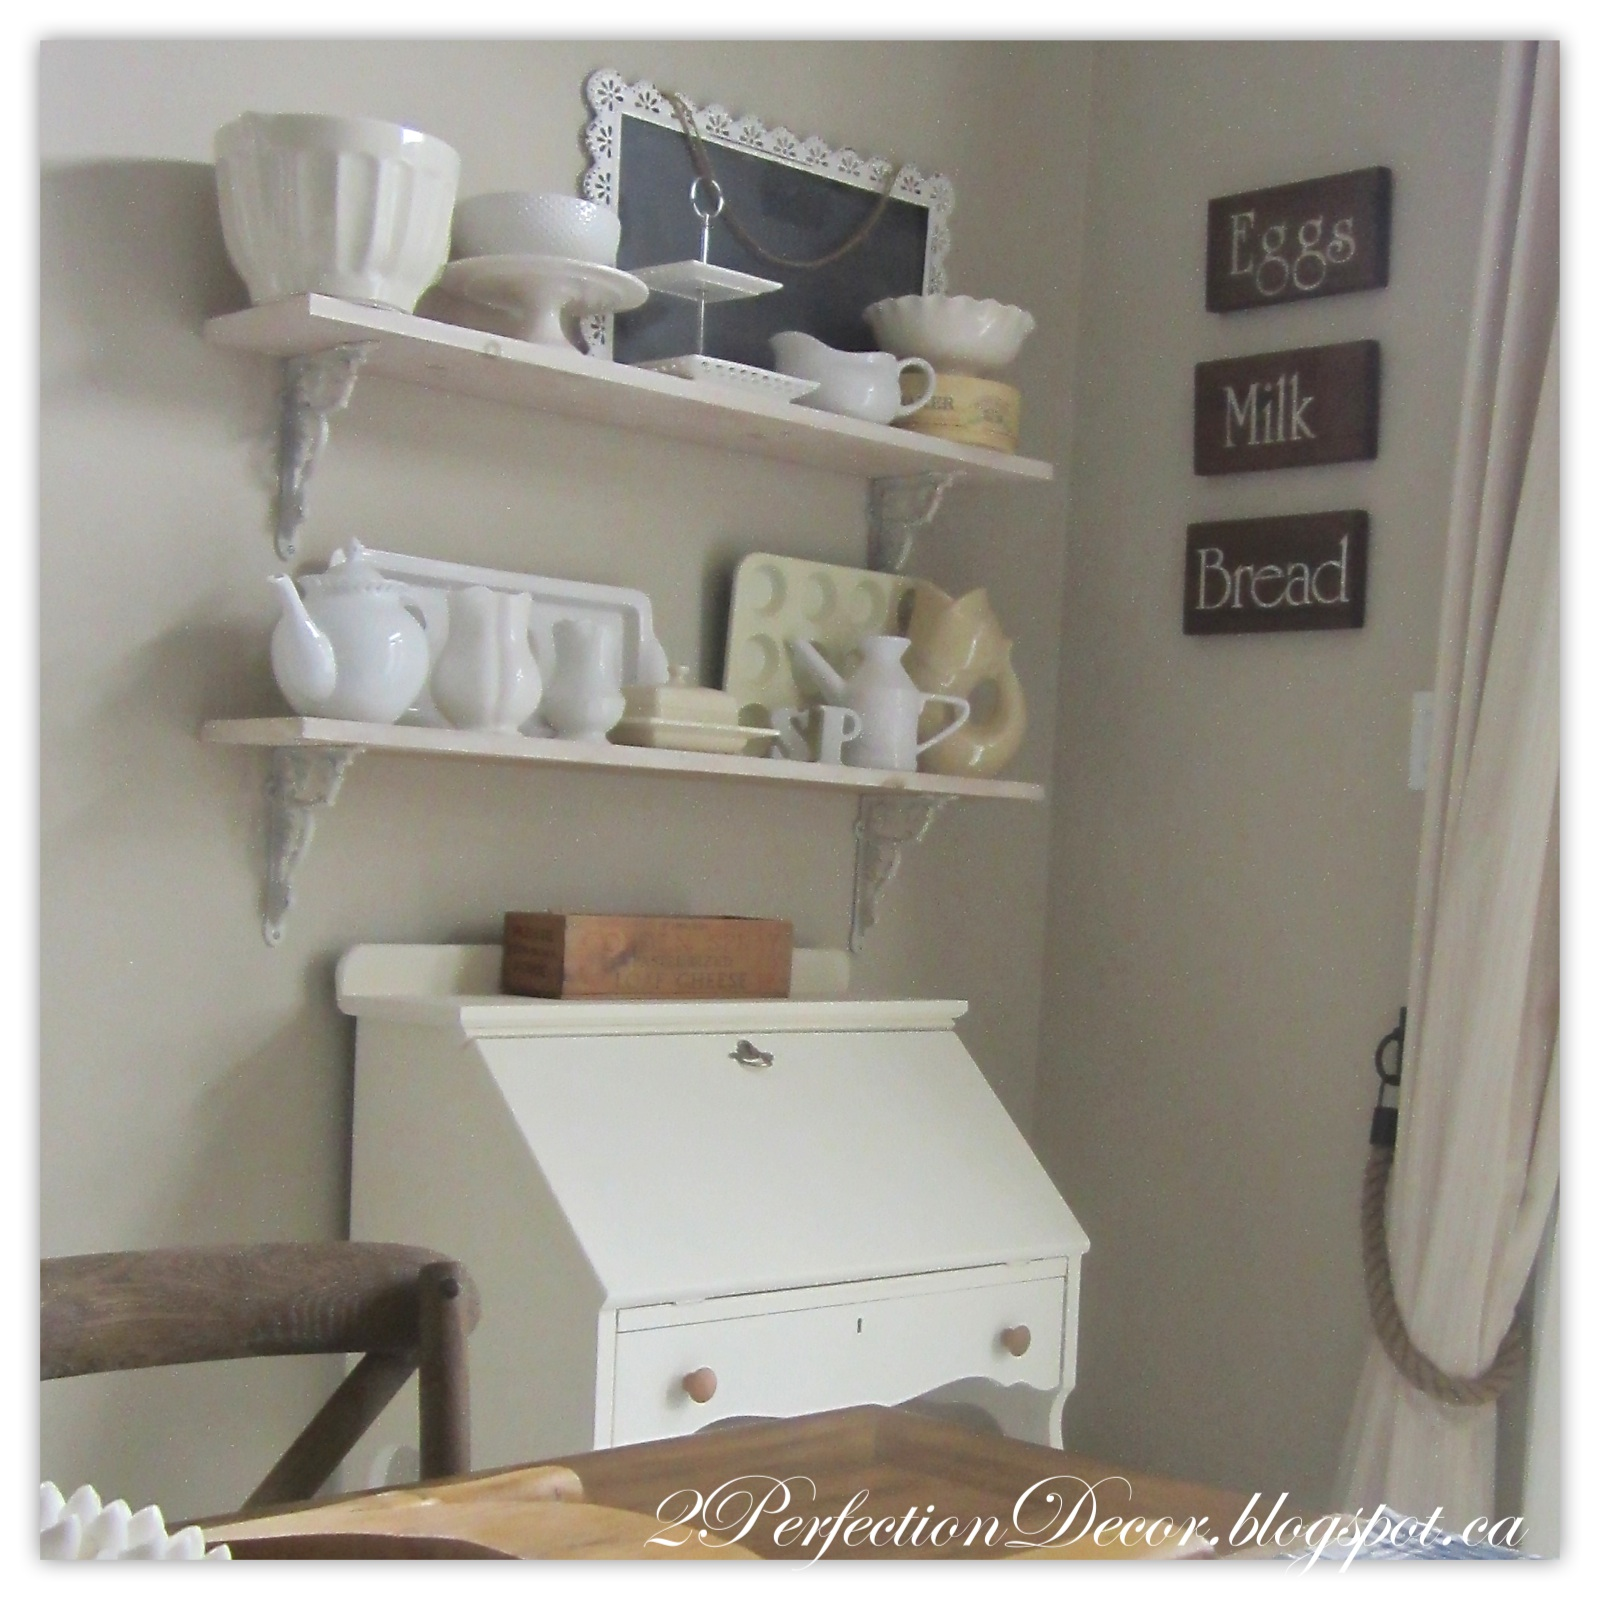 2perfection Decor Vintage Secretary Desk Makeover